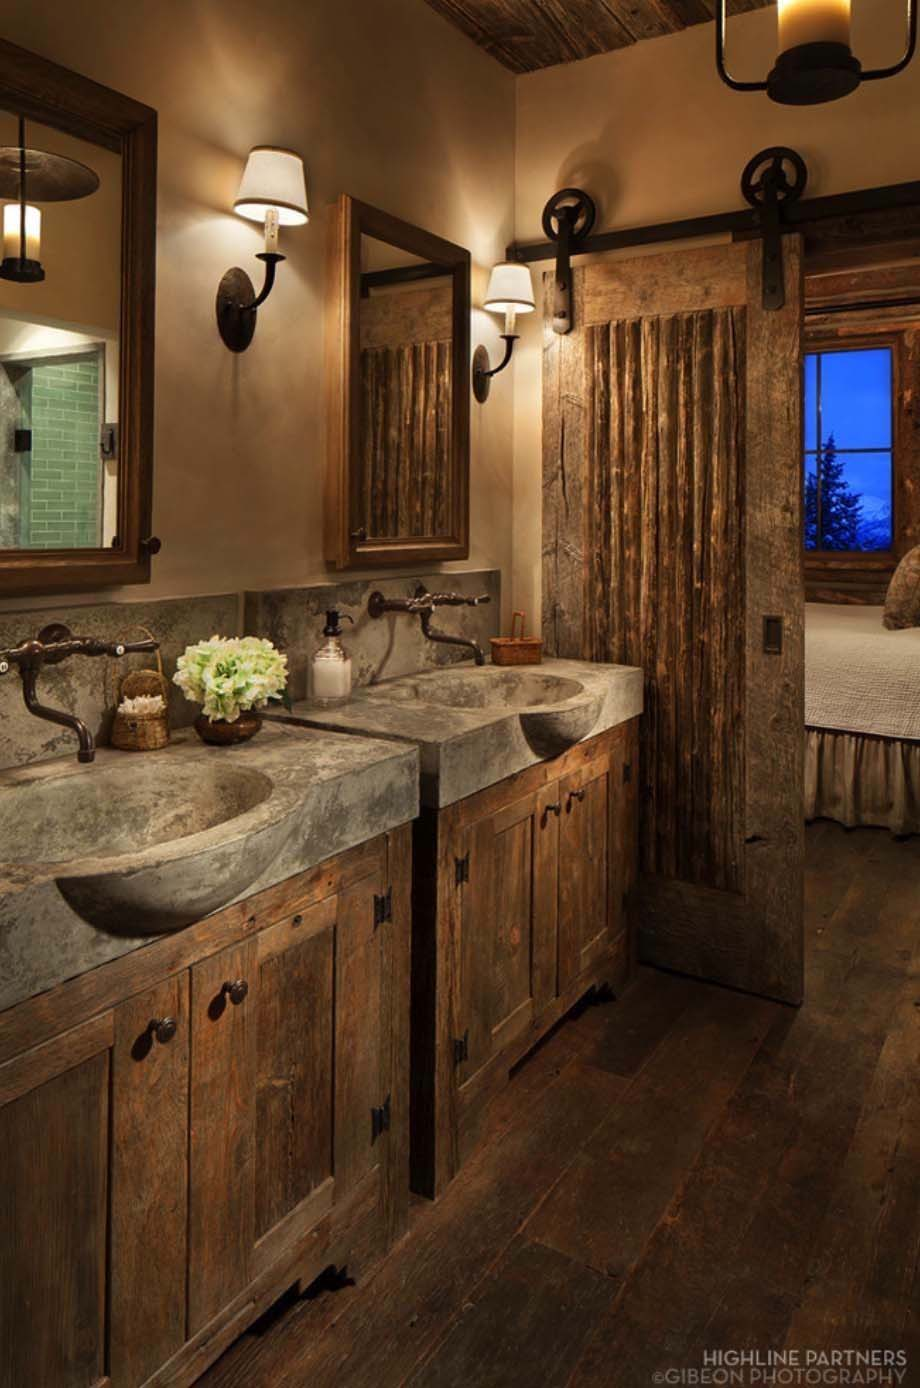 17 inspiring rustic bathroom decor ideas for cozy home - Bathroom Design Ideas Images